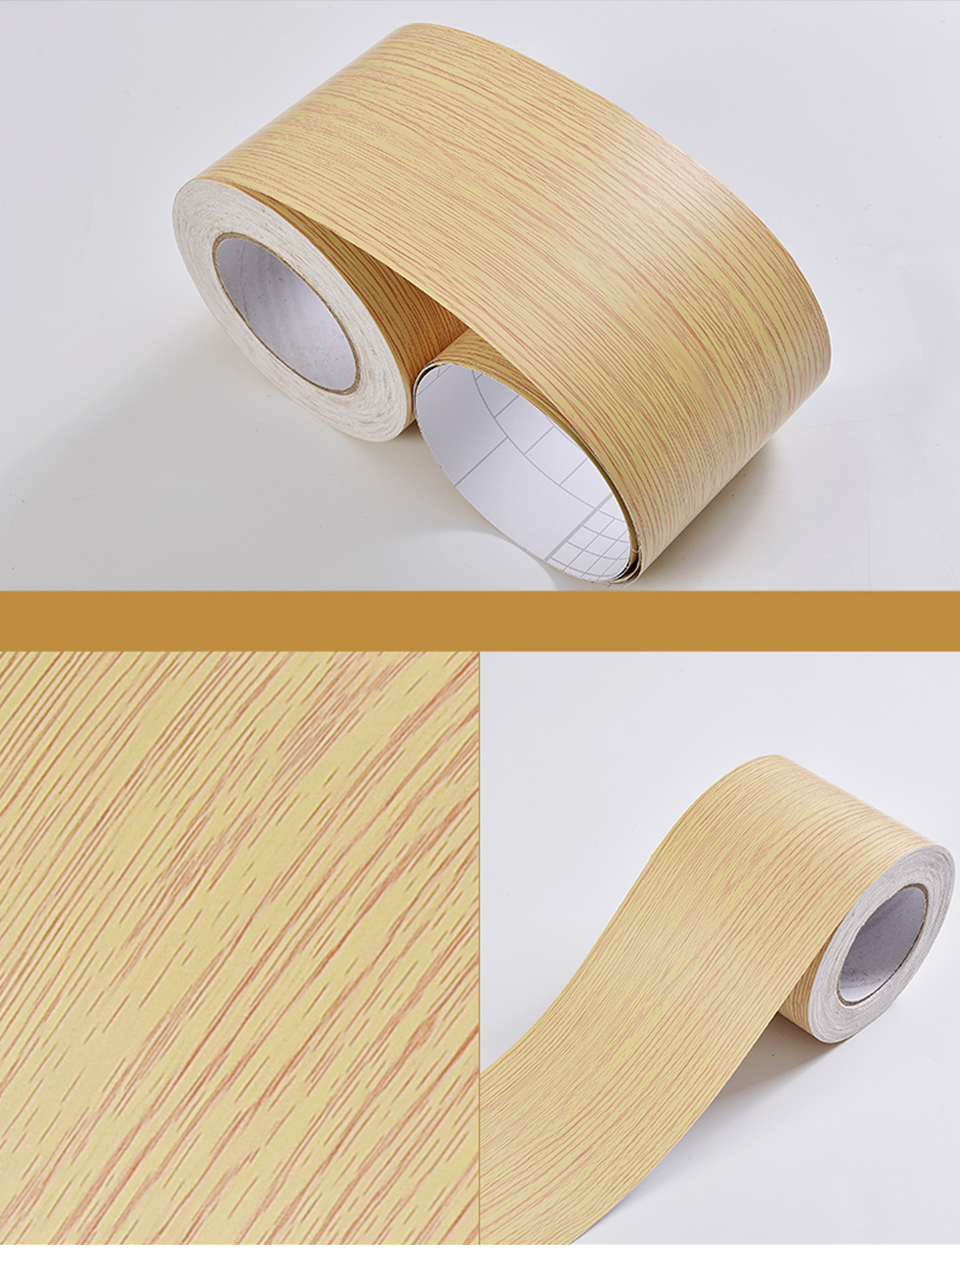 Wood Self Adhesive Window Decal Living Room Floor Border Skirting Contact Paper Waterproof Waist Line Wallpaper Home Improvement Hb5f37efe84a74c118ce0280e5e3cd671U